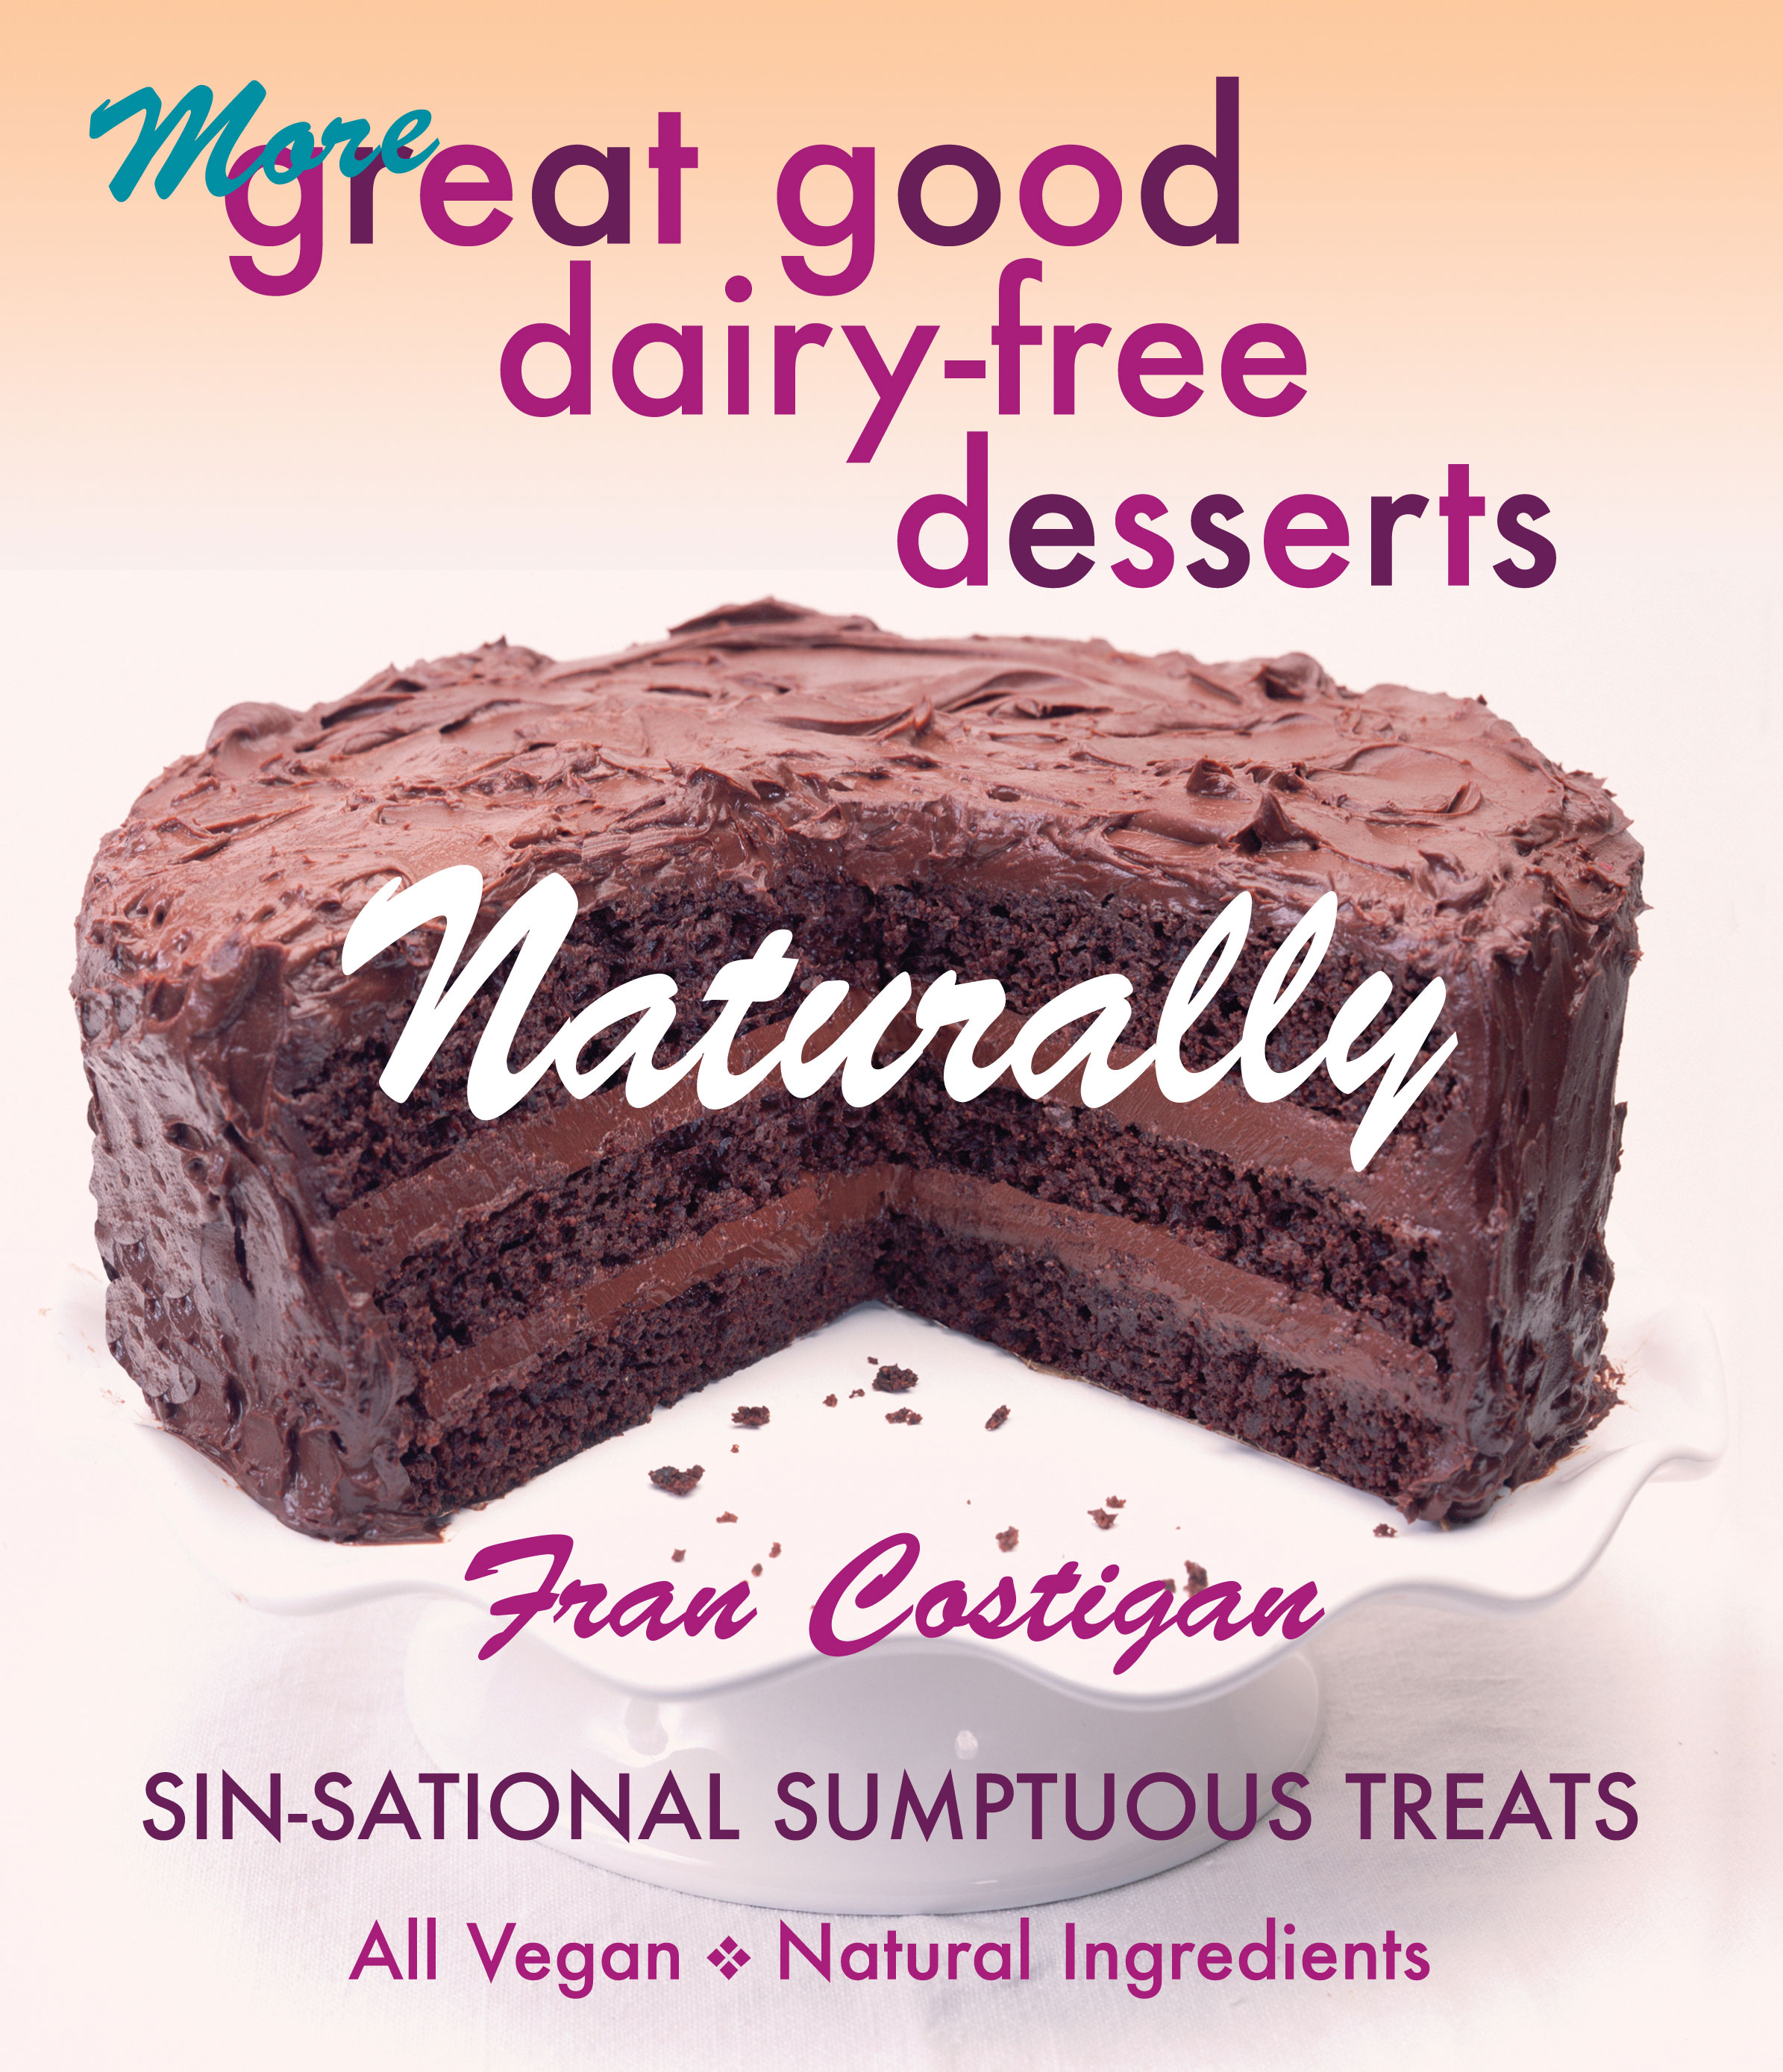 More-Great-Good-Dairy-Free-Desserts-Naturally